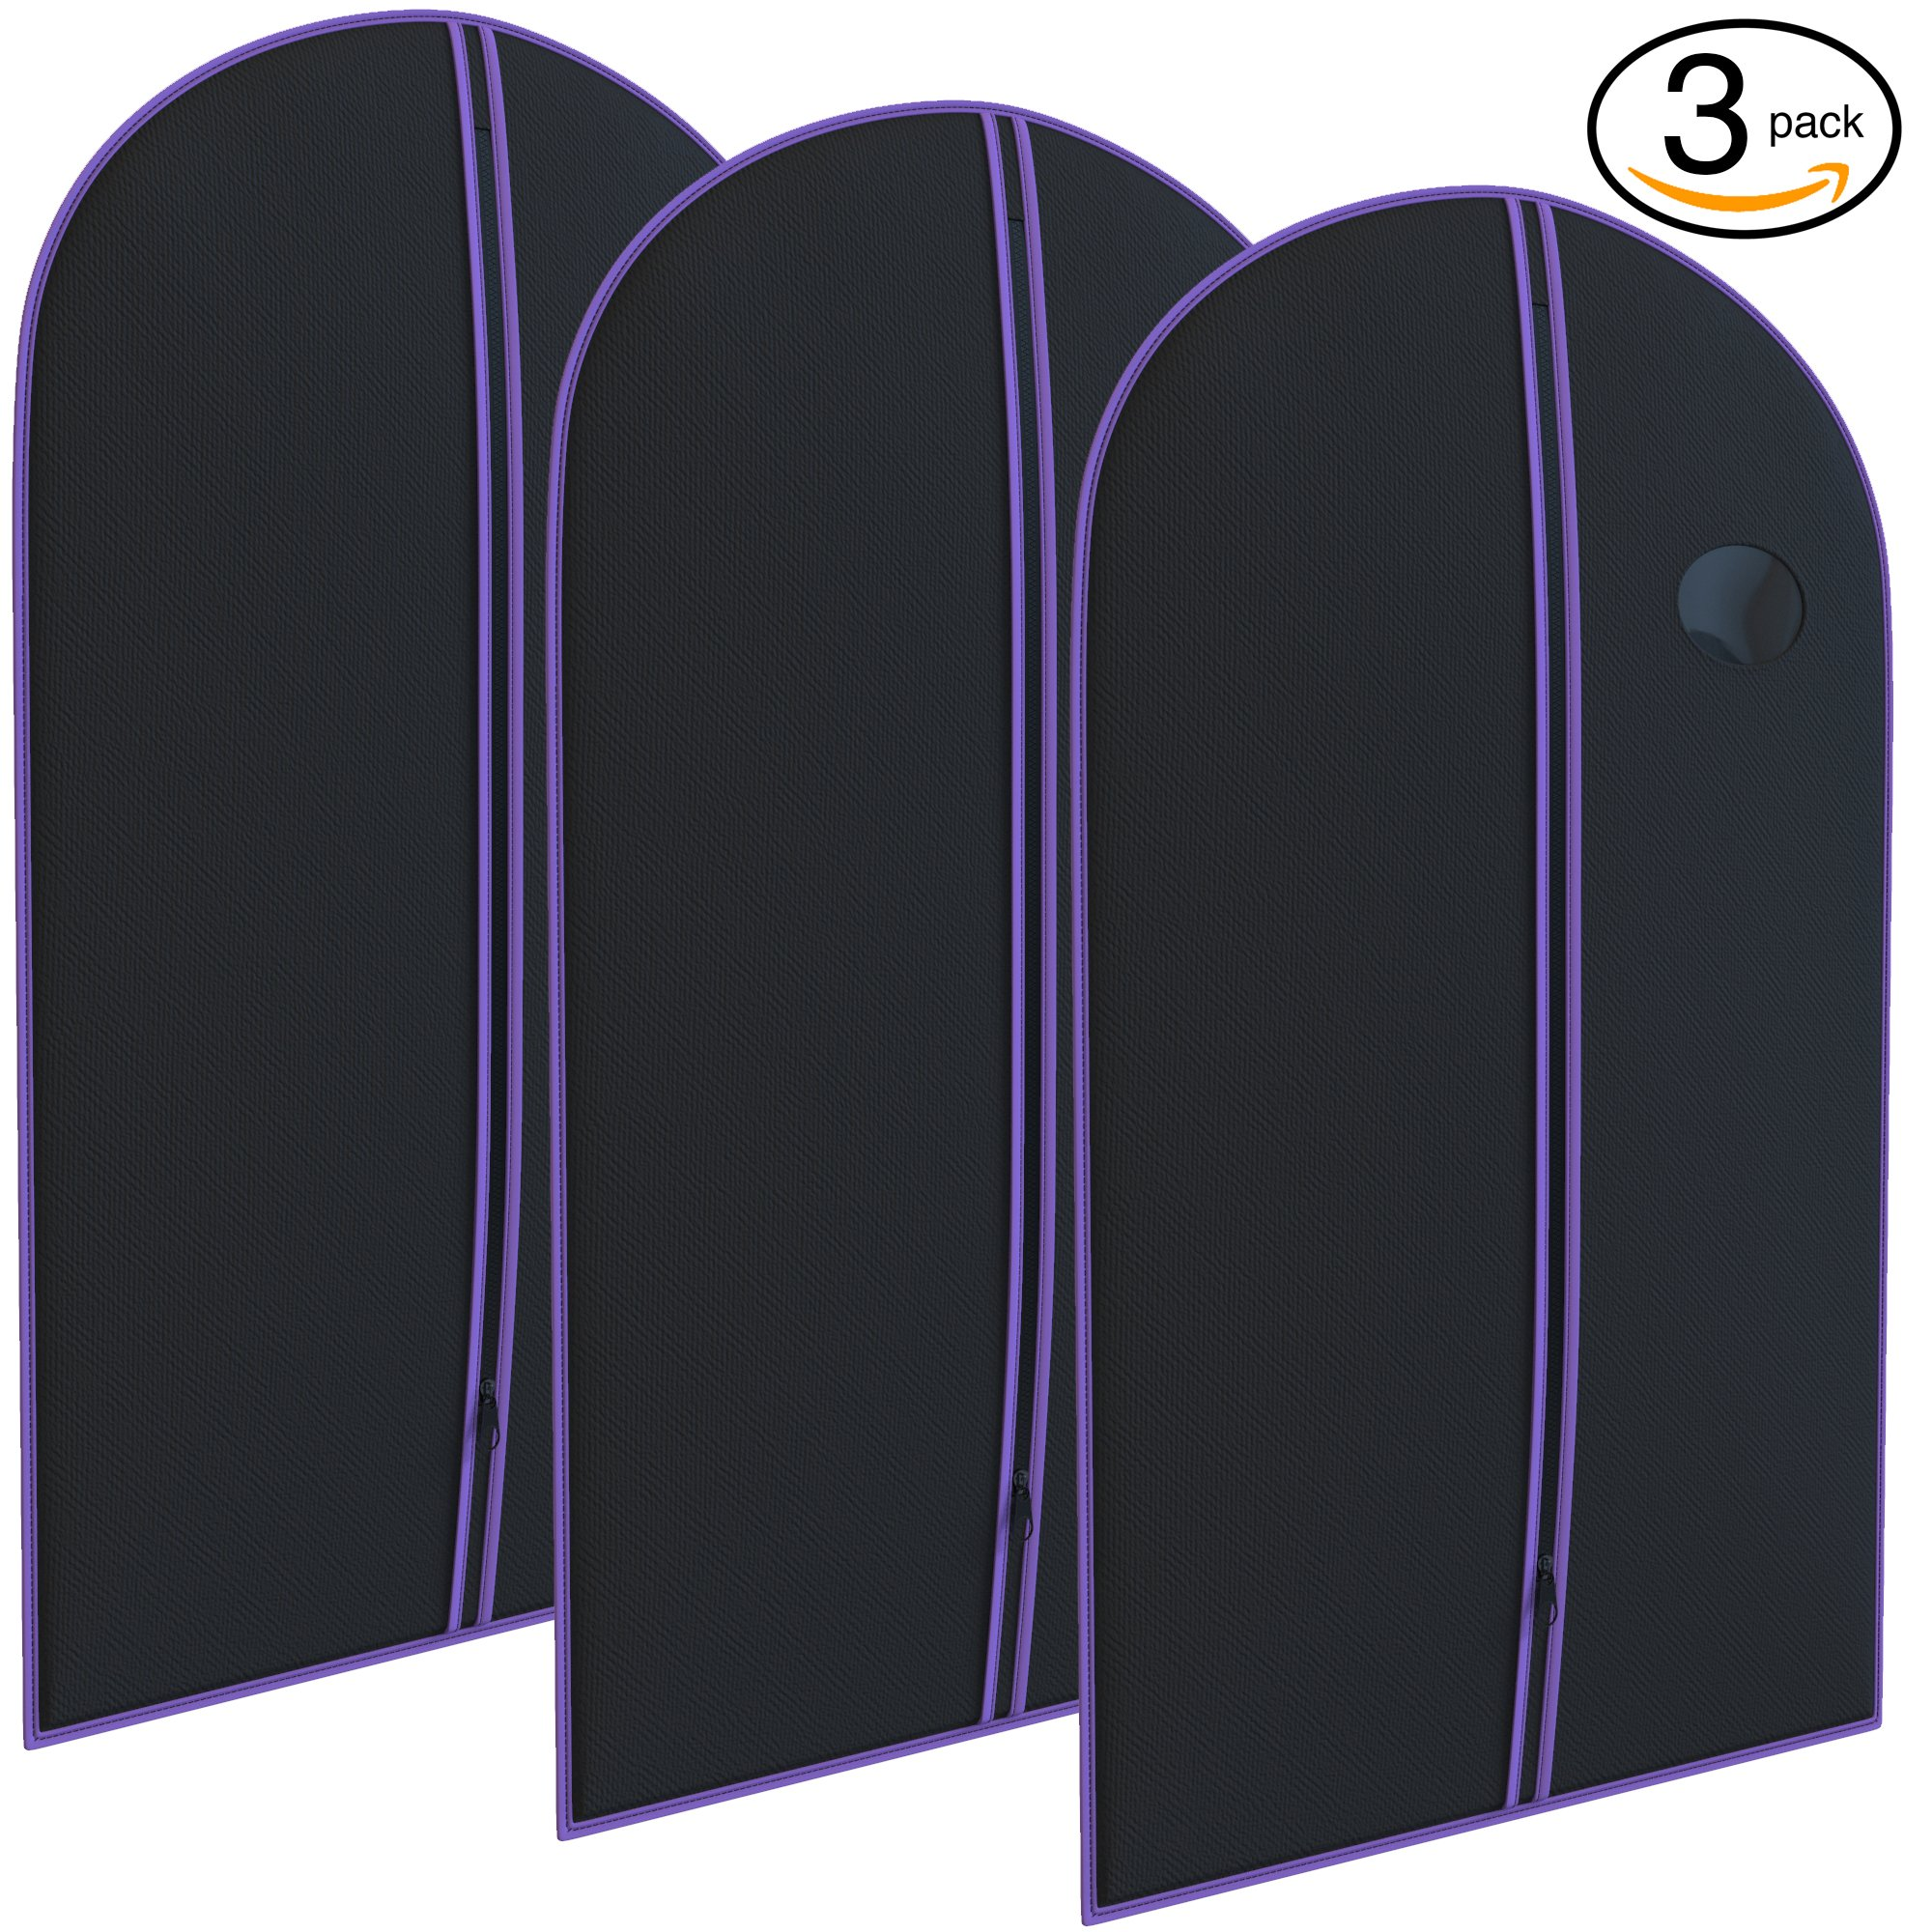 Purple Suit Garment Travel Bags 3 Pack - 40'' X 24'' - By Your Bags